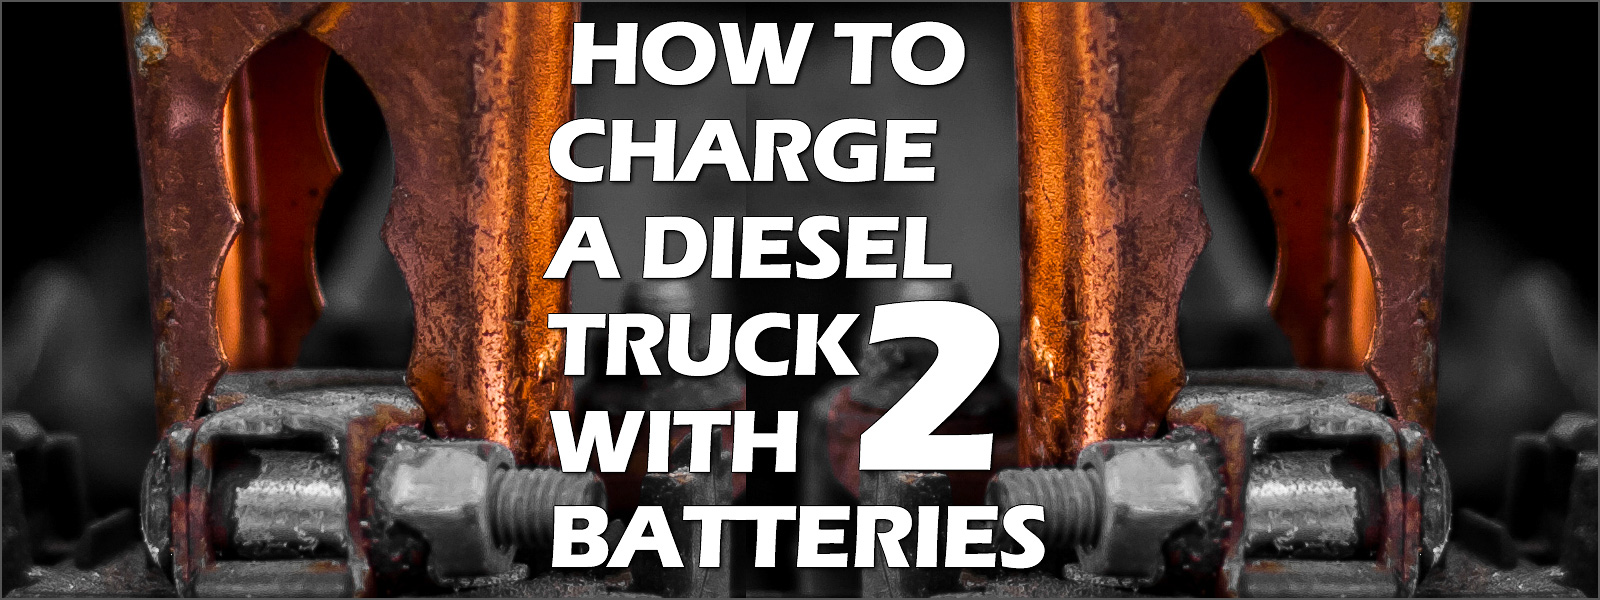 How to Charge a Diesel Truck with Two Batteries